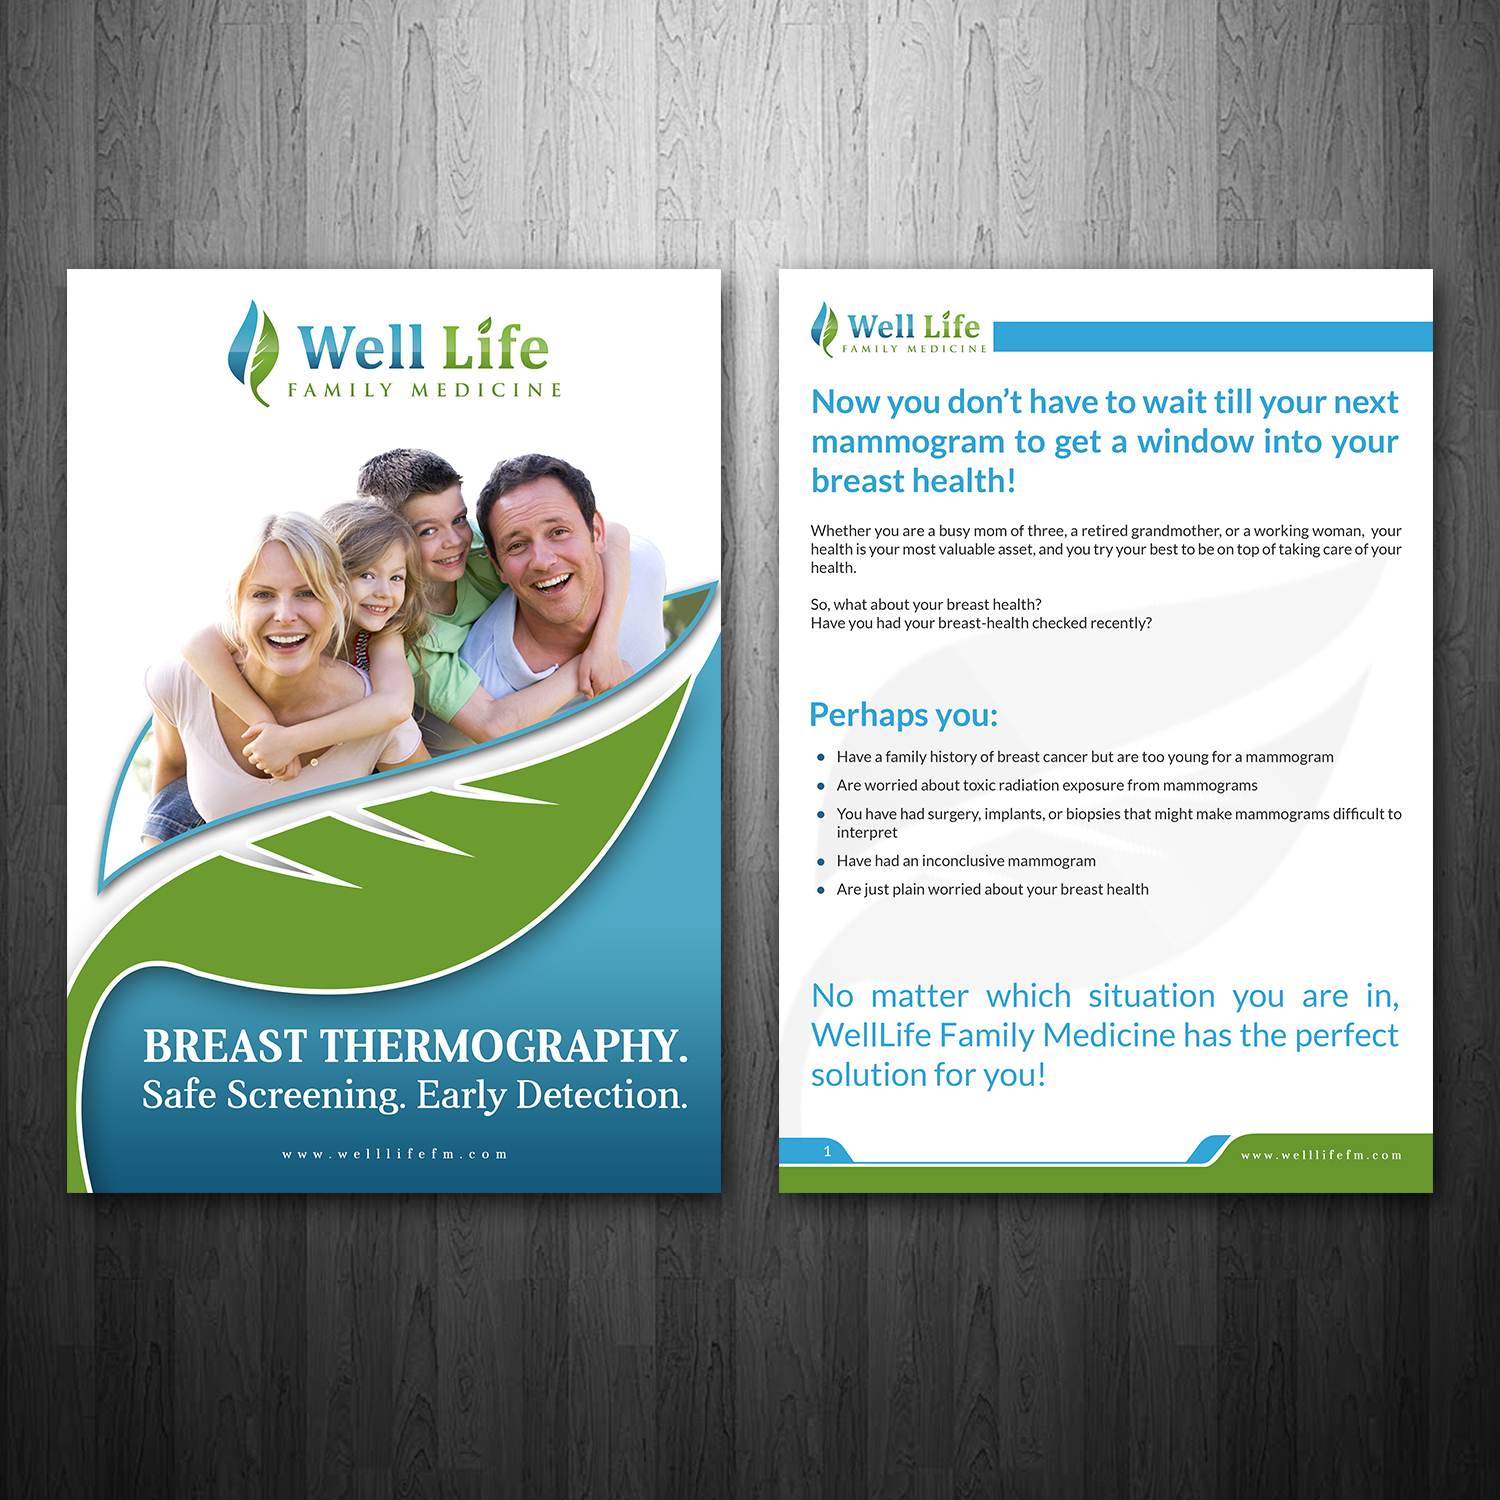 medical brochure design for a company by hih7 design 16651373